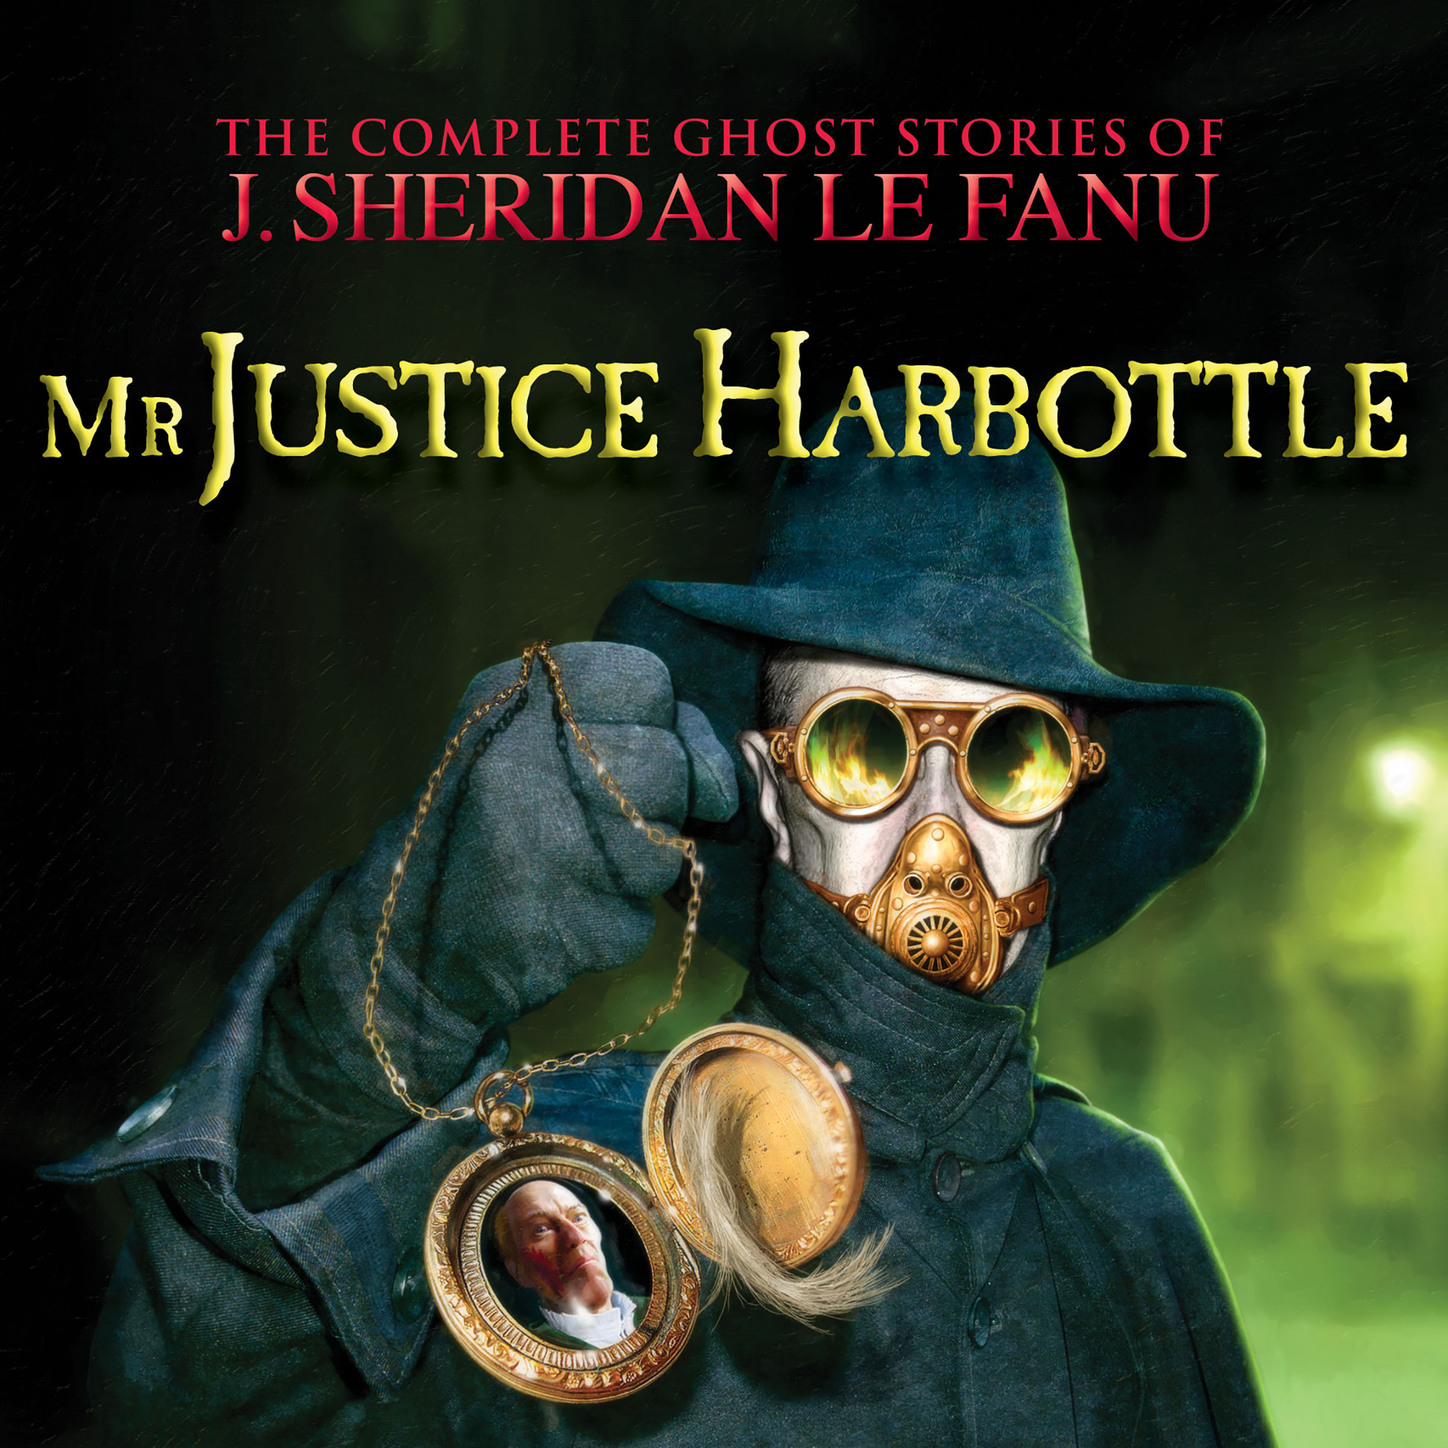 J. Sheridan Le Fanu Mr Justice Harbottle - The Complete Ghost Stories of J. Sheridan Le Fanu, Vol. 1 of 30 (Unabridged) le fanu joseph sheridan the tenants of malory volume 1